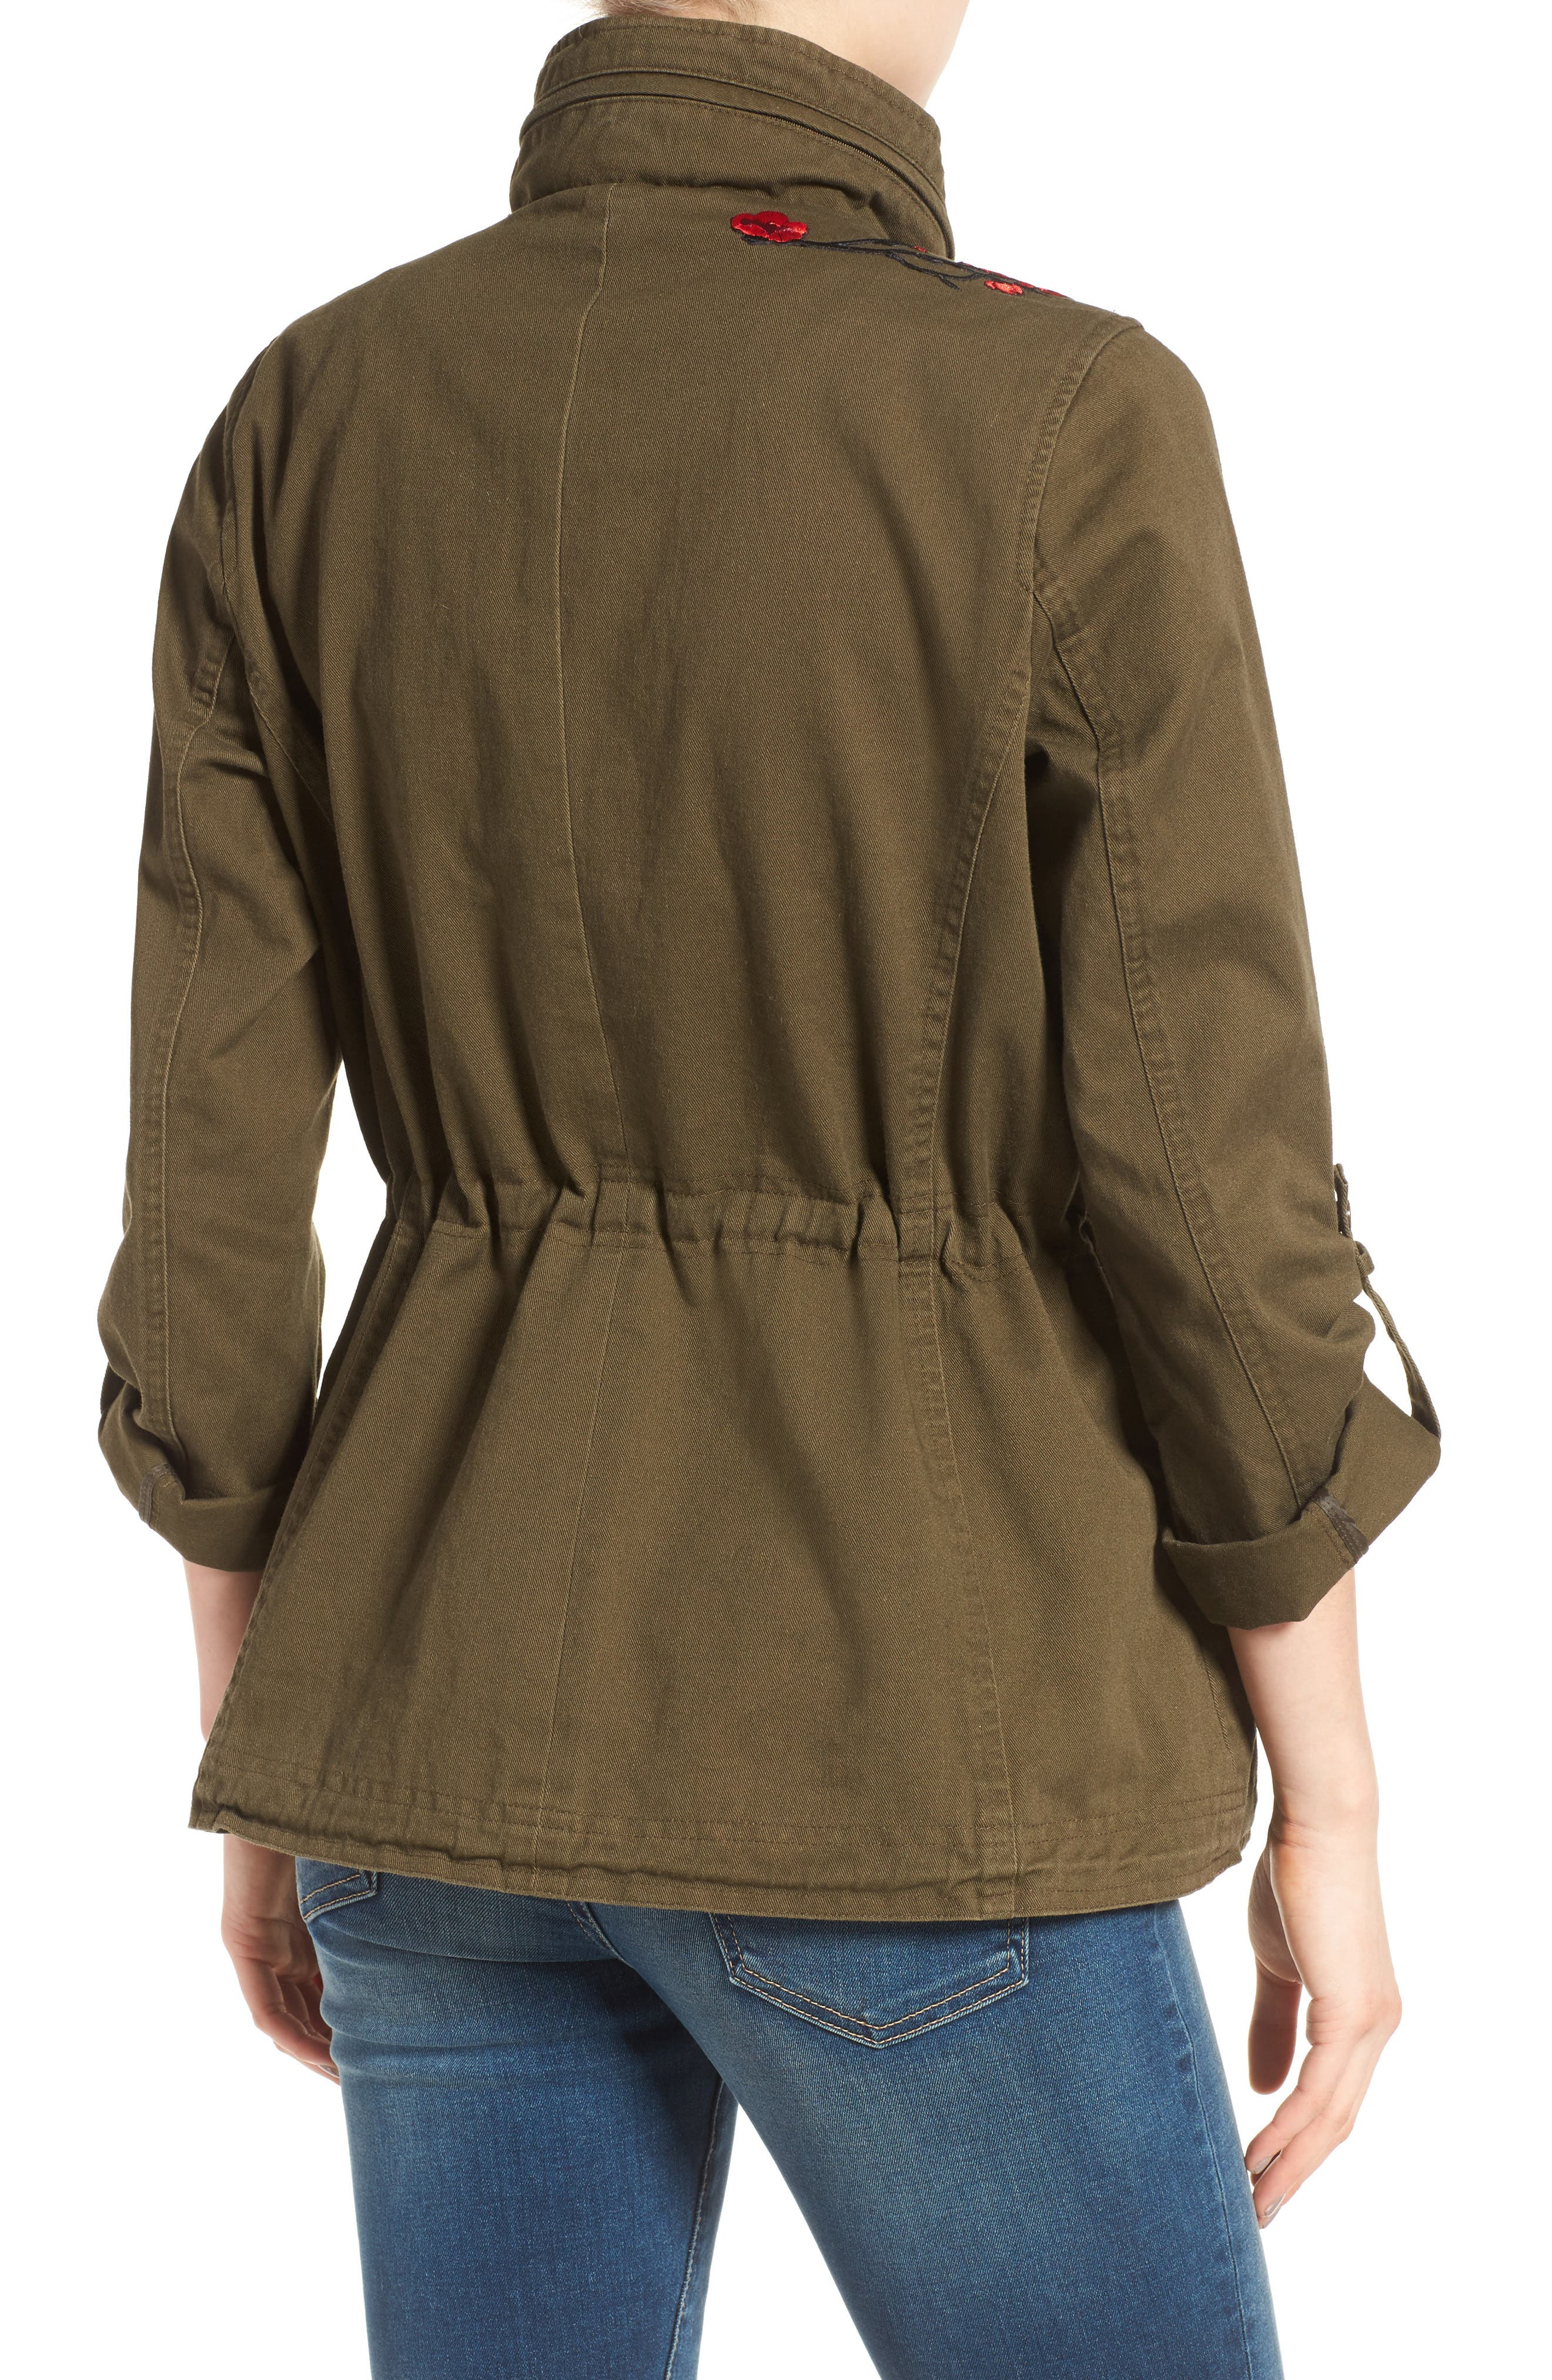 Alternate Image 2  - Vince Camuto Embroidered Cotton Twill Utility Jacket